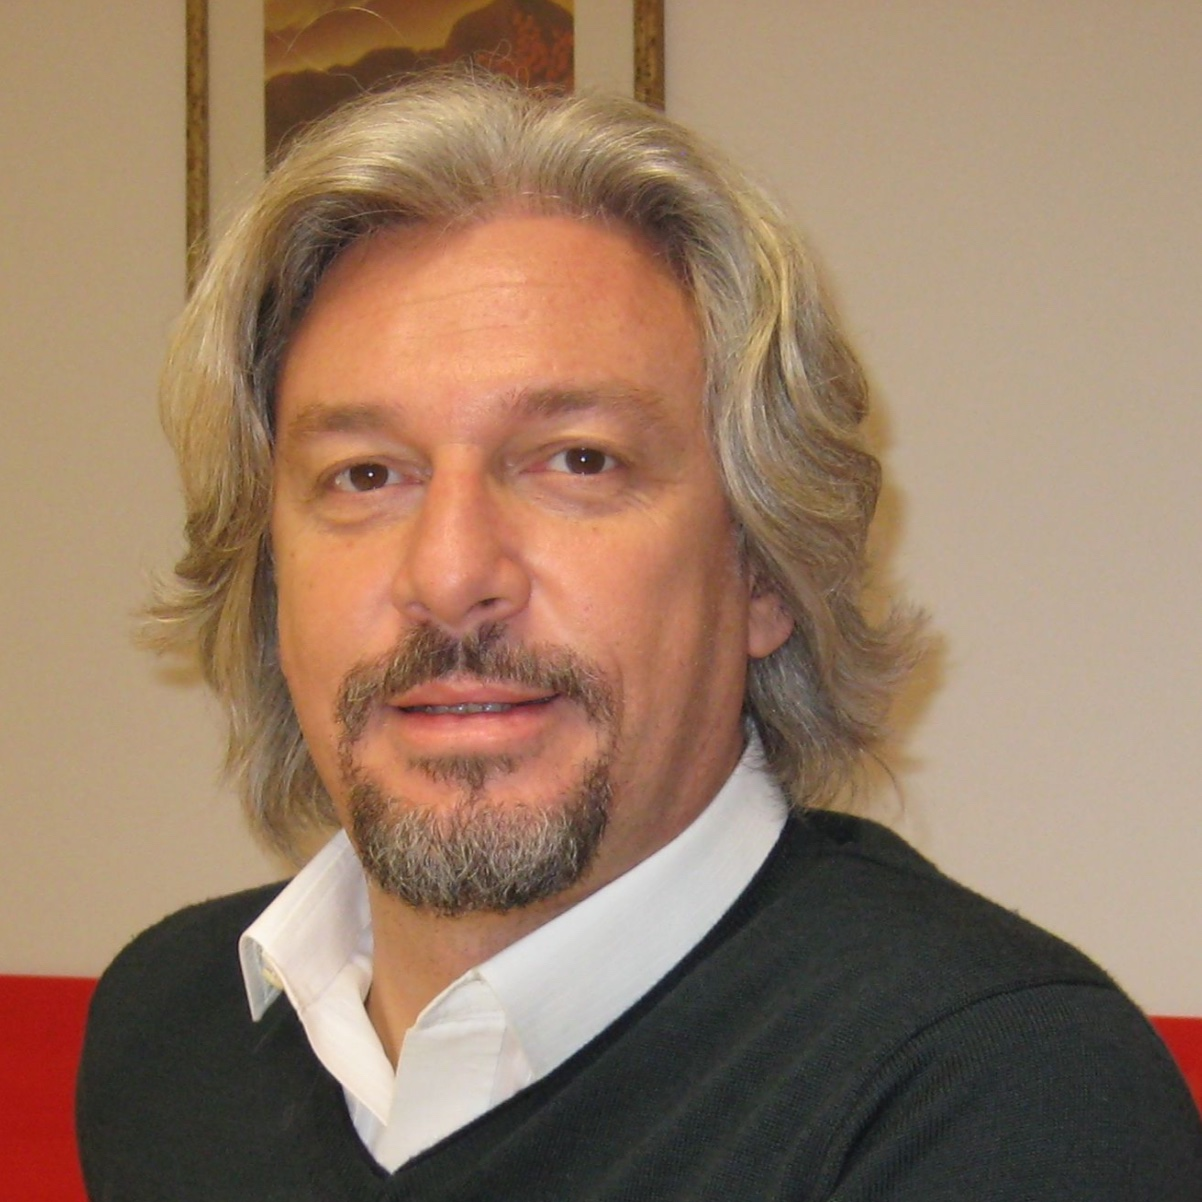 Stefano-Cainelli